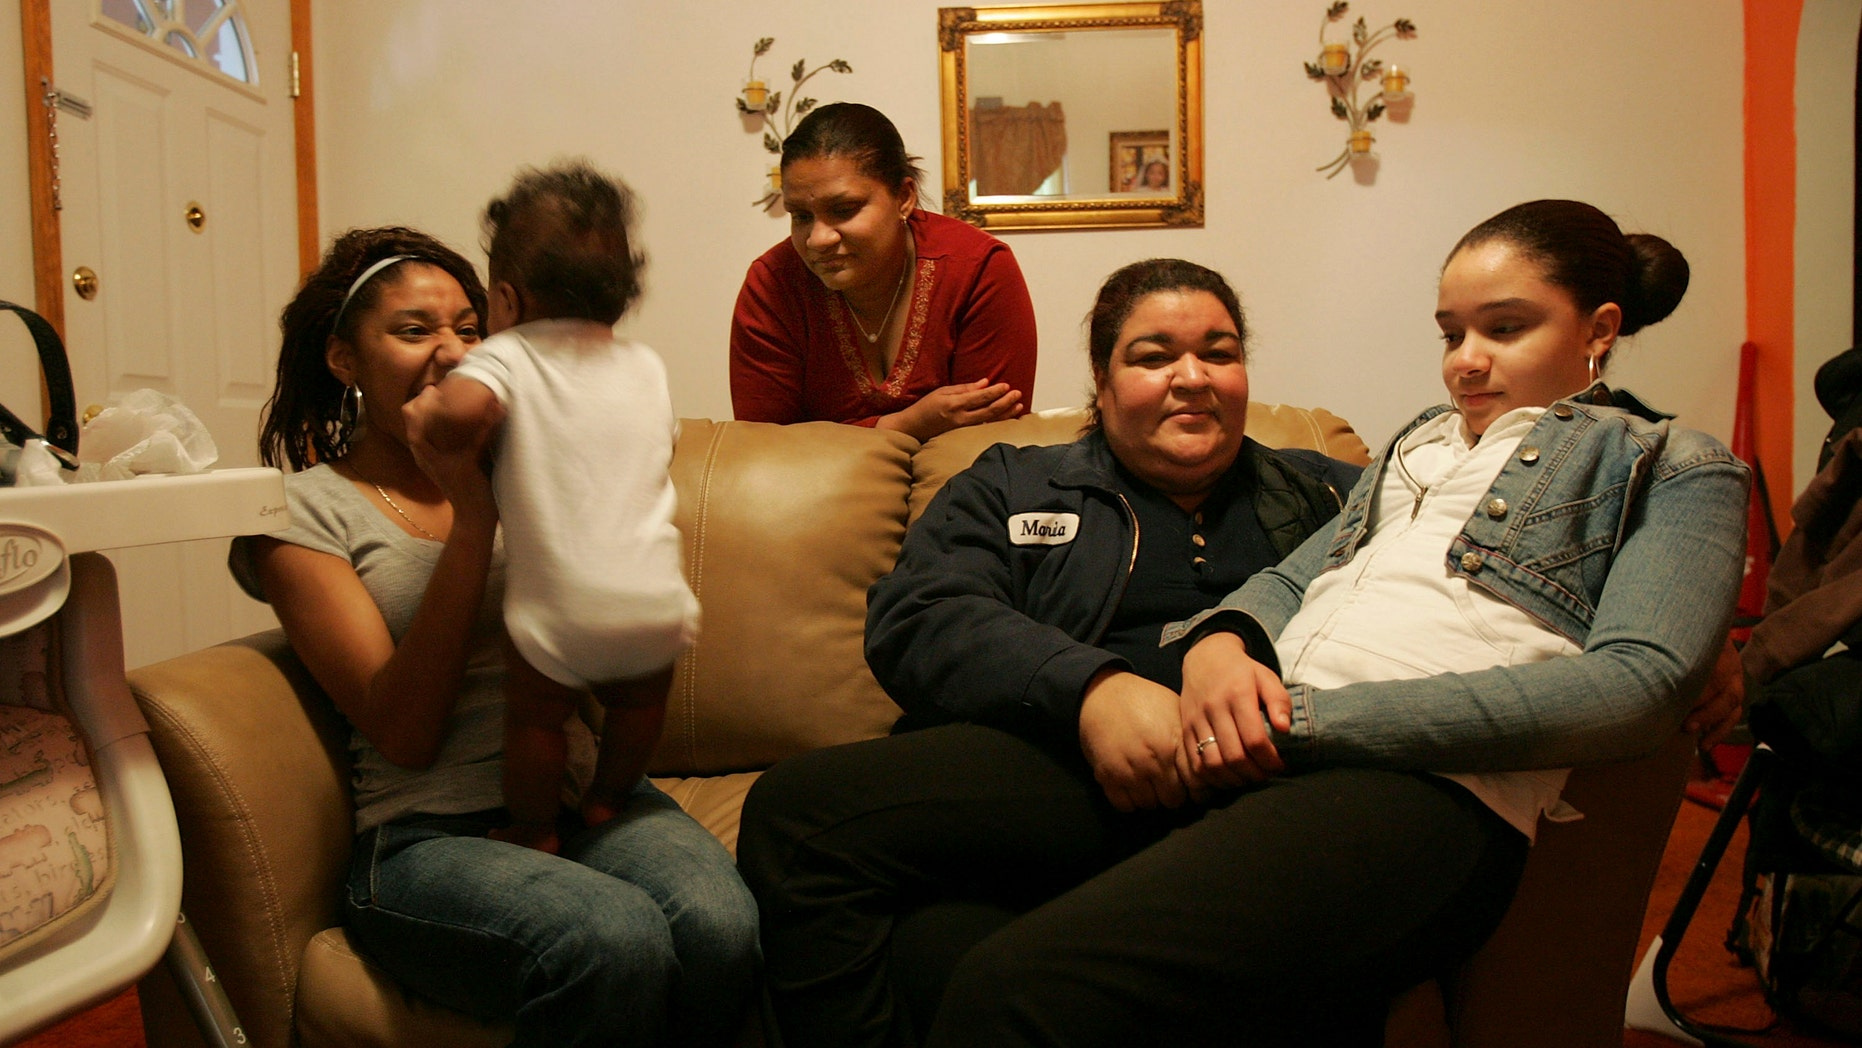 HAZLETON, PA - MARCH 14: Members of the Castillo family sit in their living room March 14, 2007 in Hazleton, Pennsylvania.   (Photo by Spencer Platt/Getty Images)